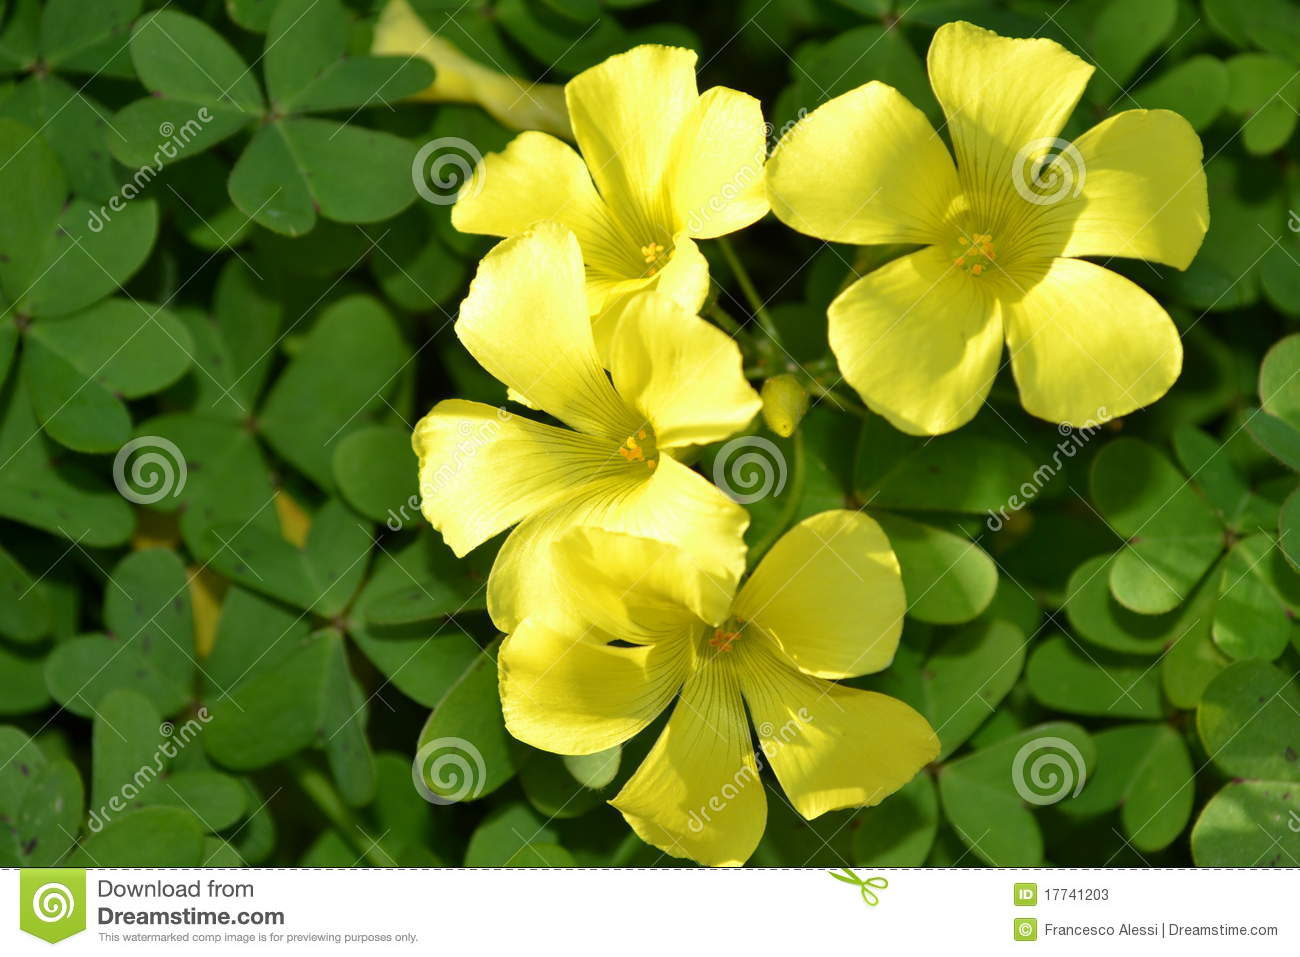 Yellow Clover Flowers Stock Image Image Of Horizontal 17741203